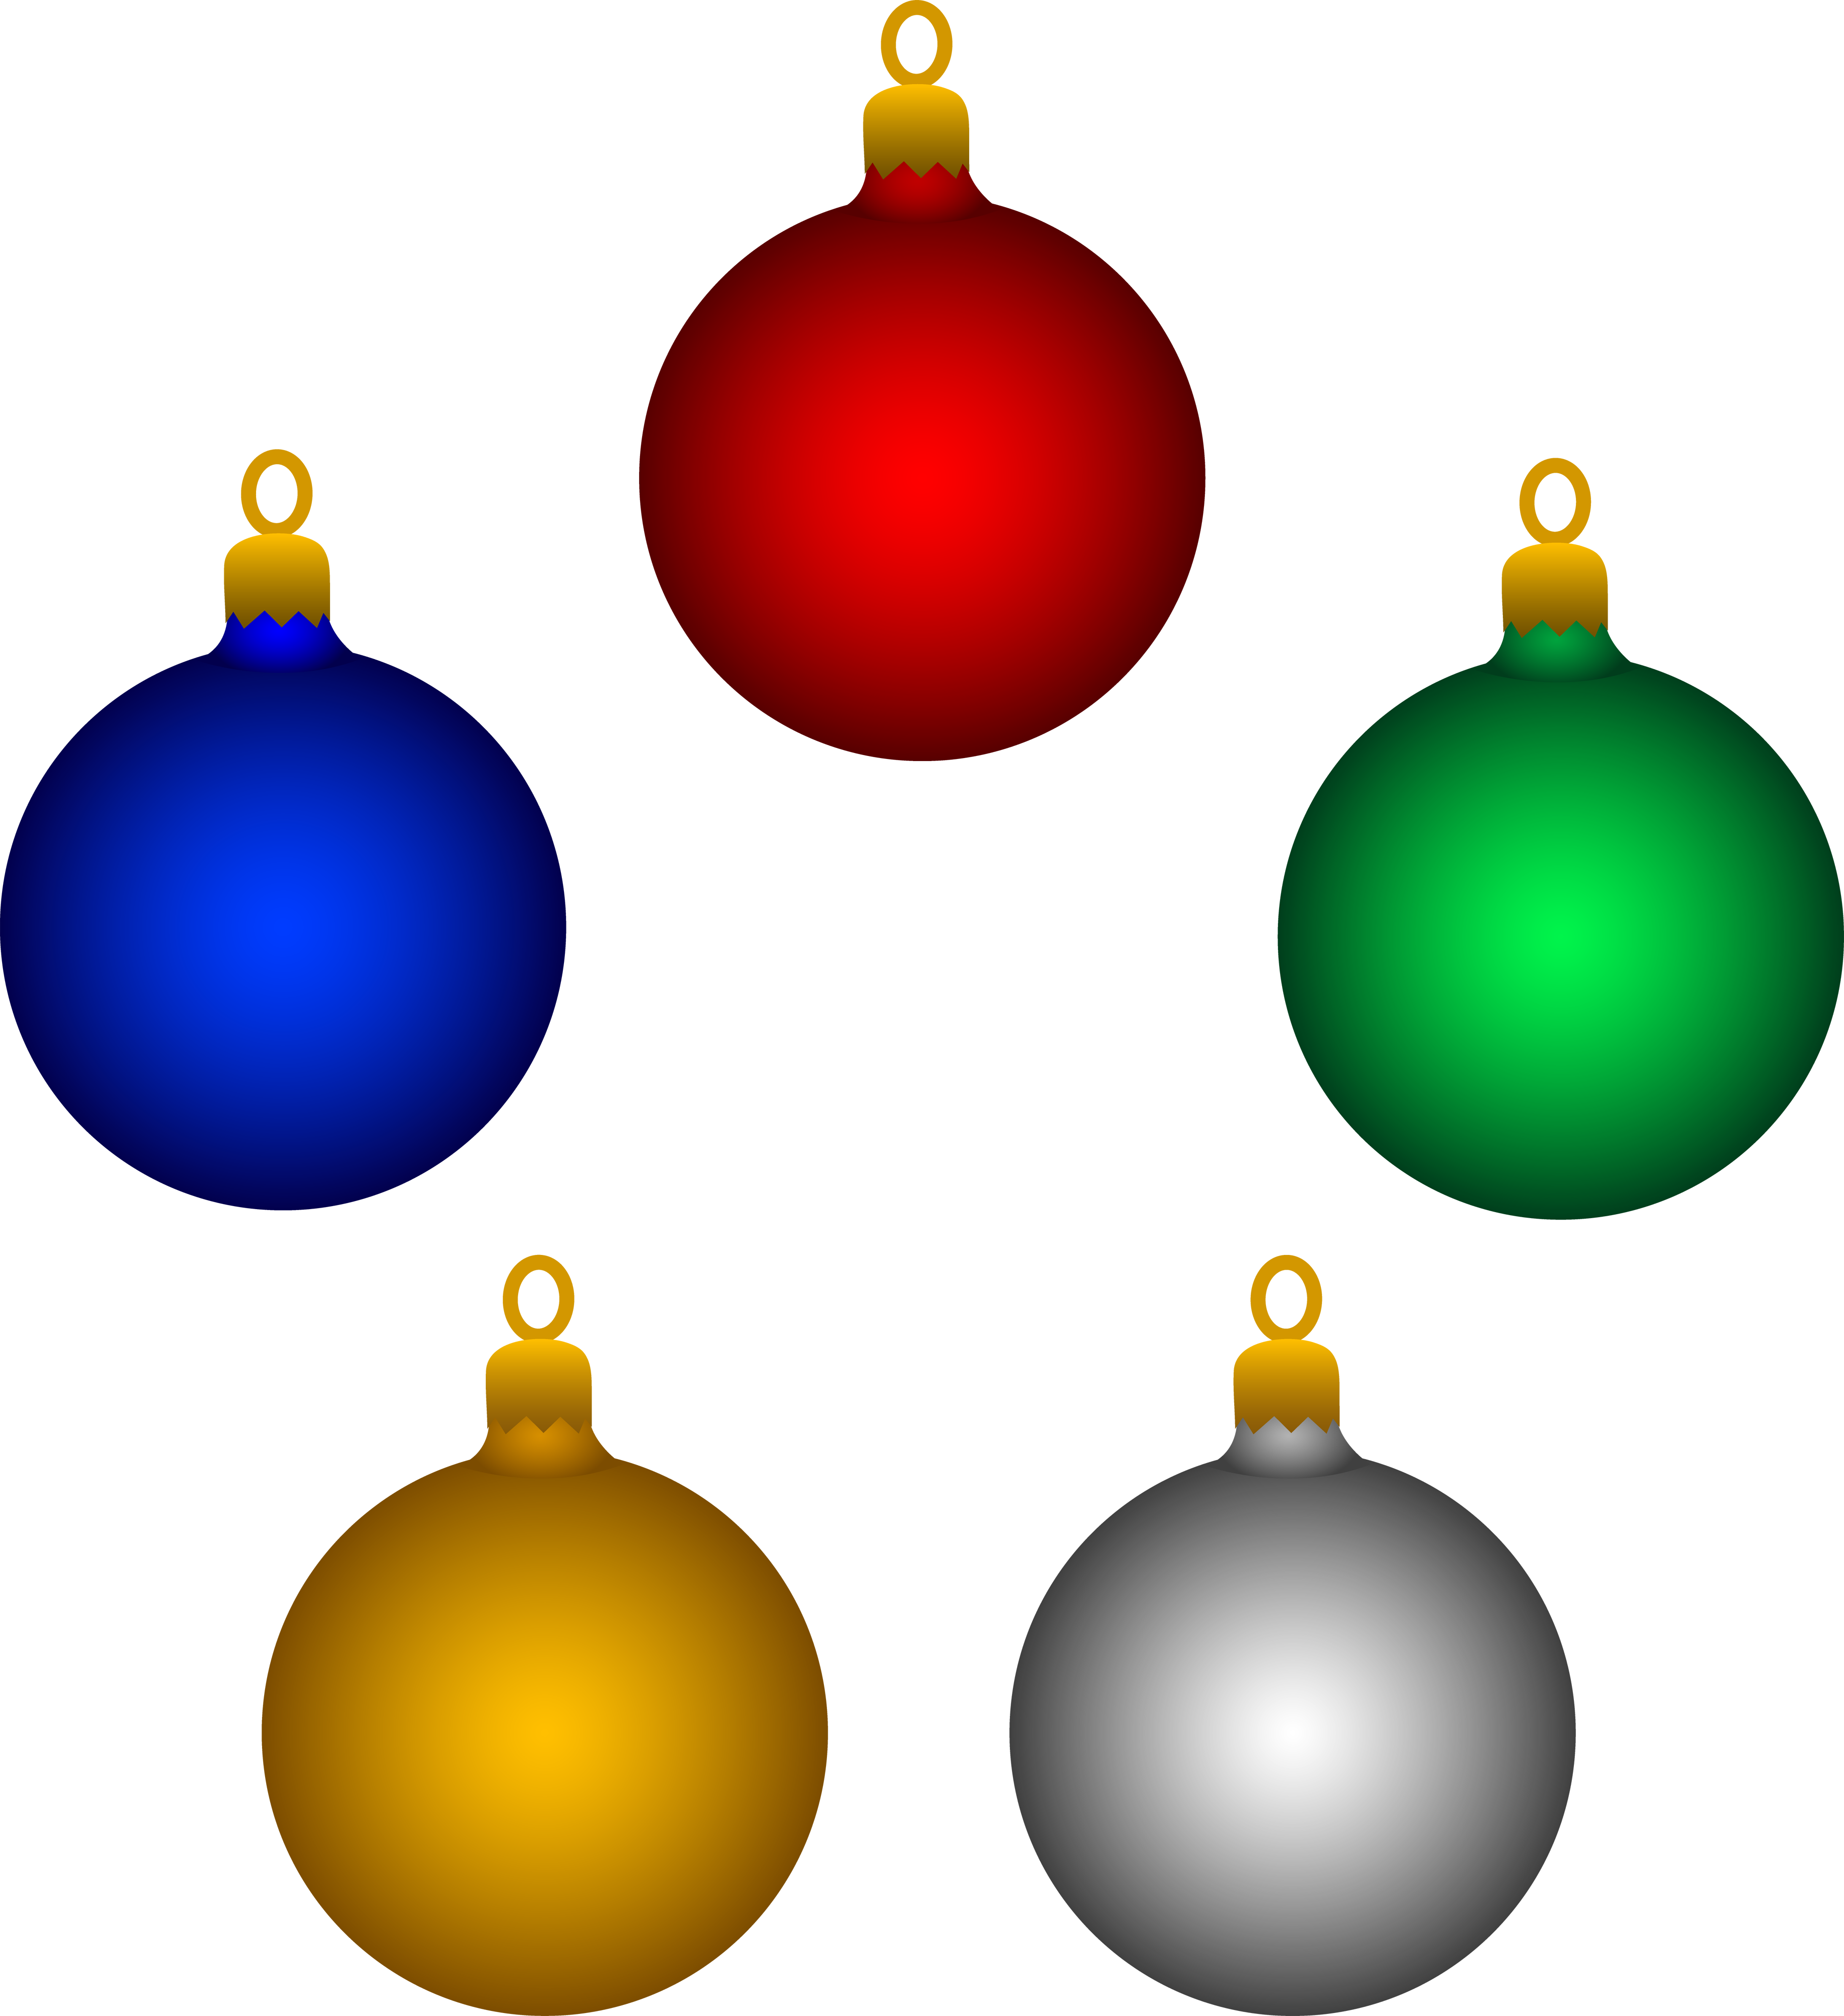 Christmas tree decorations clip art free.